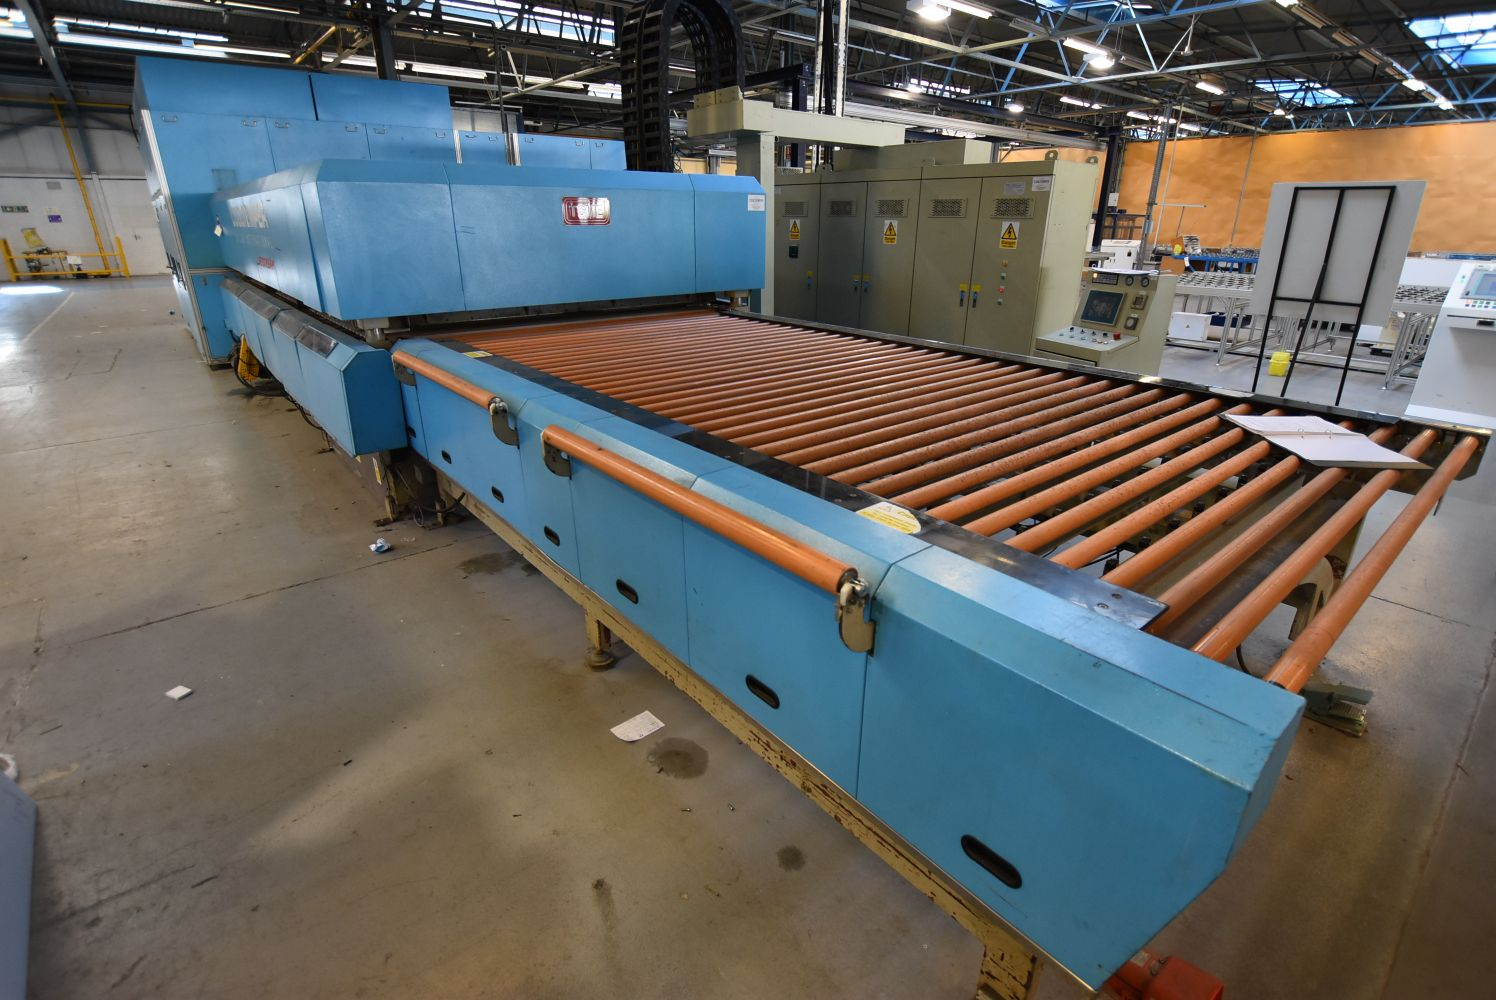 Solar Panel Production Machinery & Associated Equipment, Tempering Furnace, Factory Cranes and Air Compressor